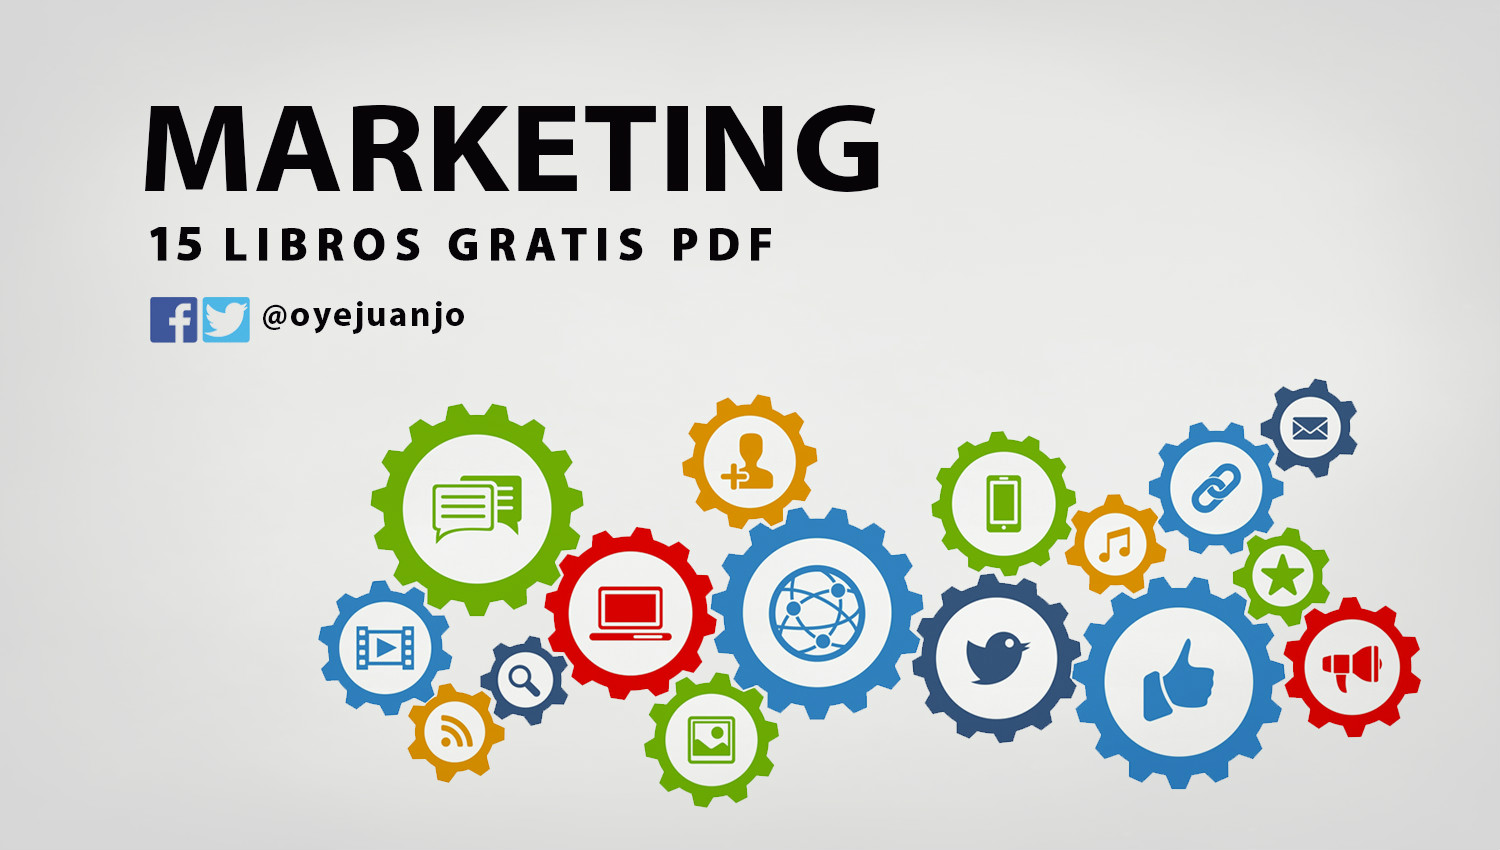 Libros Pdf Gratis Para Descargar 15 Libros Gratis En Pdf De Marketing Oye Juanjo